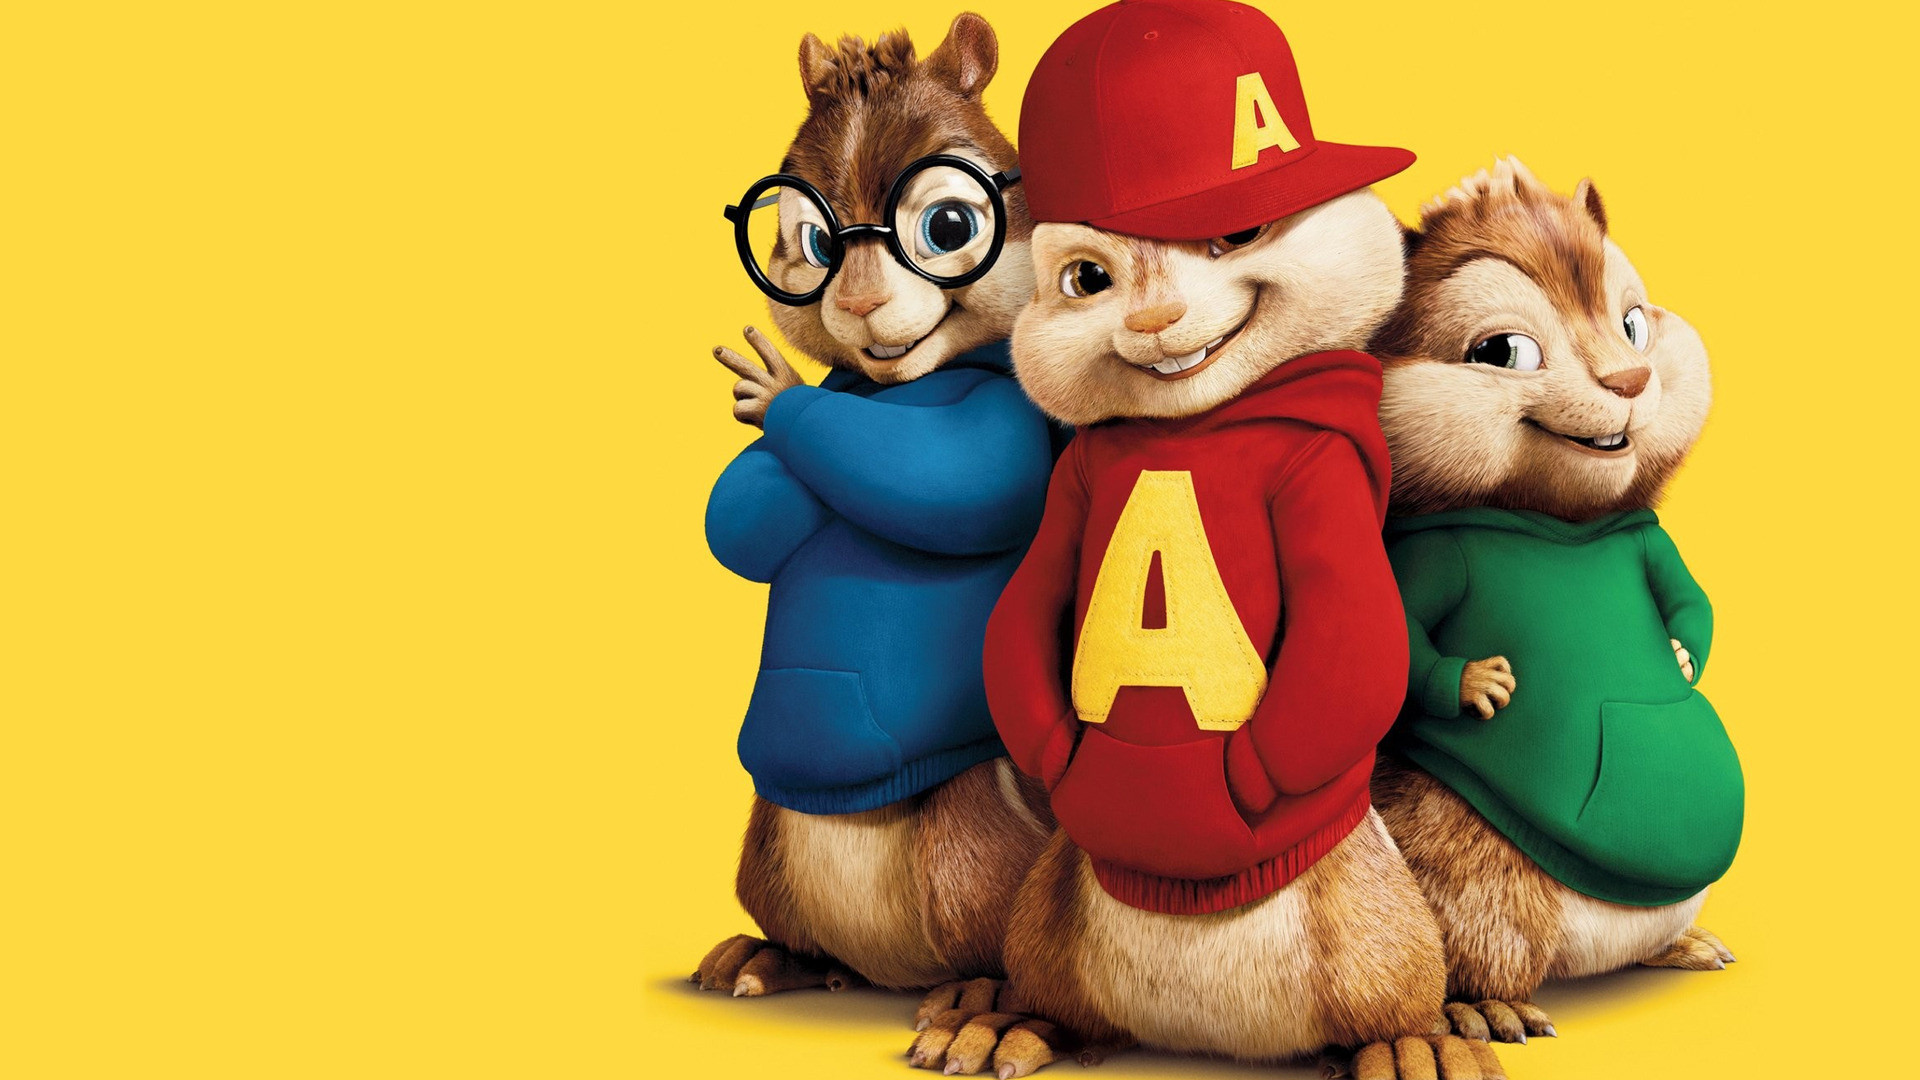 Alvin And The Chipmunks Backgrounds, Compatible - PC, Mobile, Gadgets| 1920x1080 px